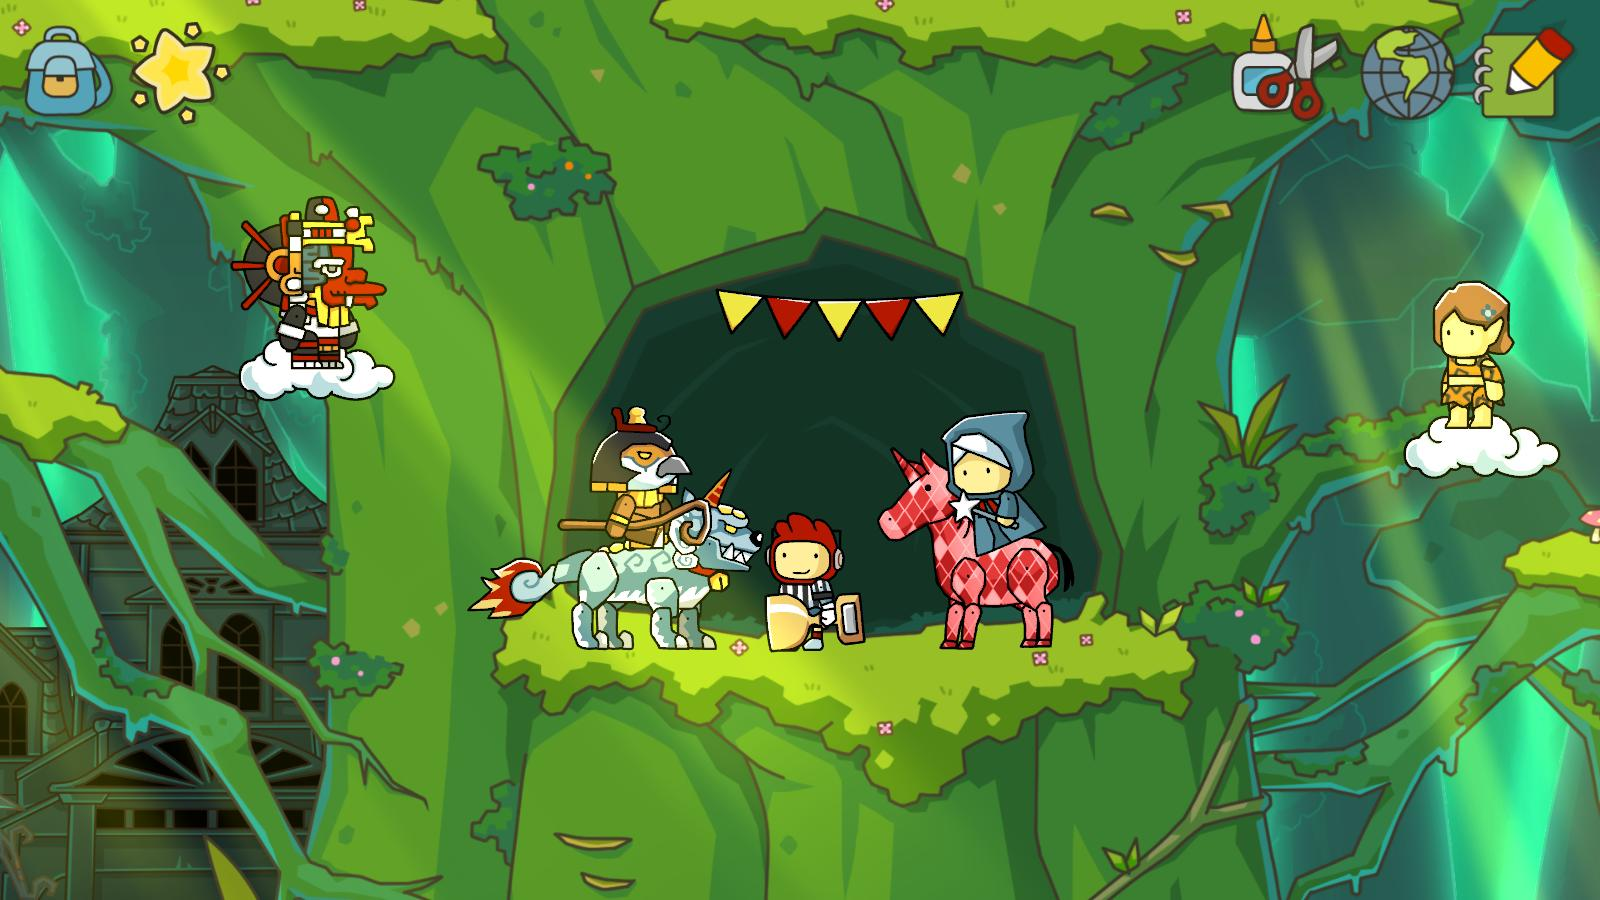 E3 2012: Scribblenauts Unlimited Announced For Wii U And 3DS